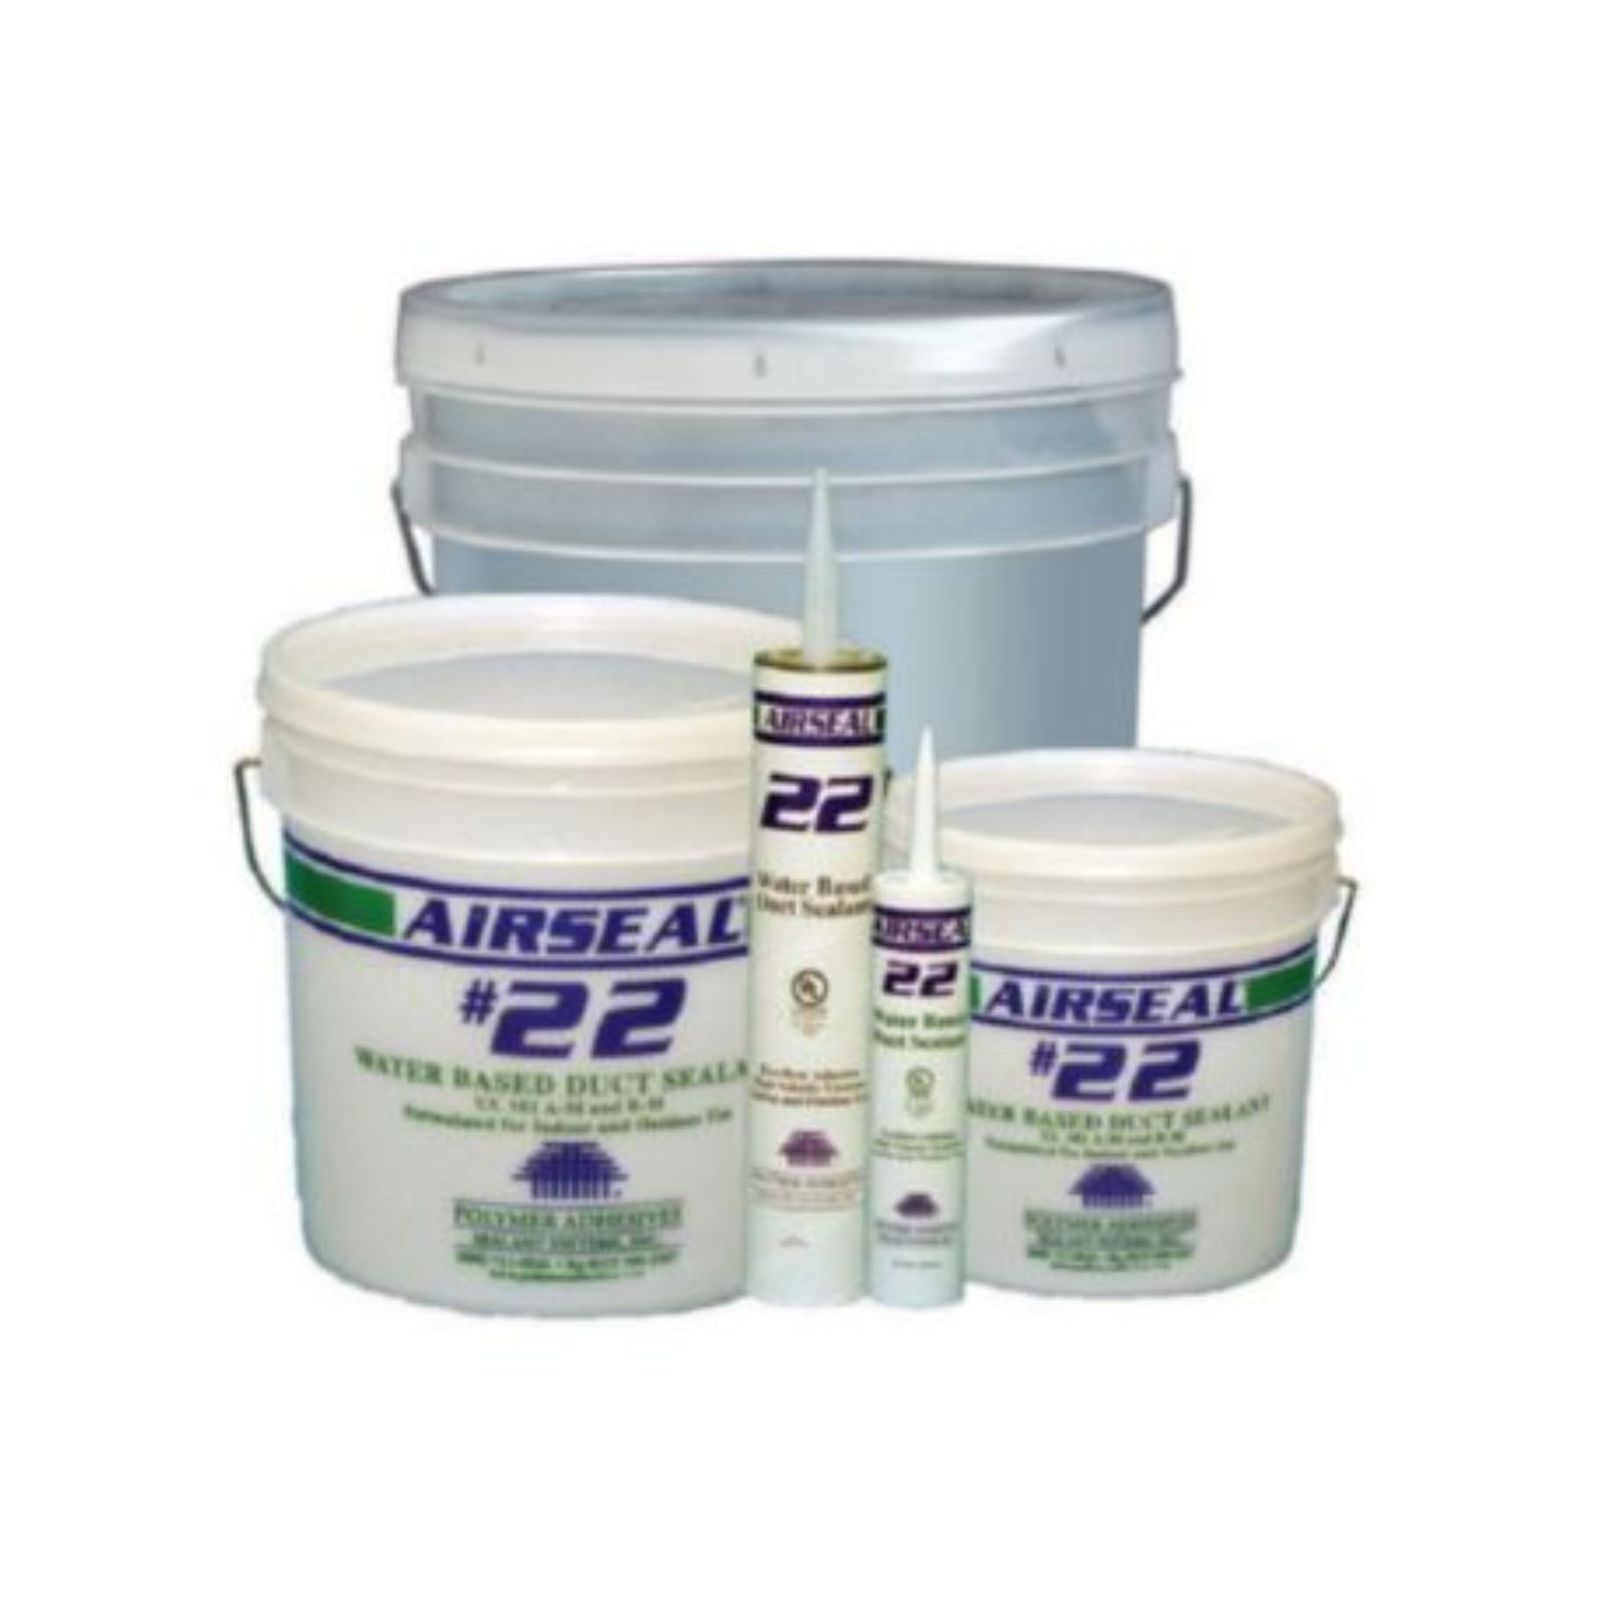 Polymer Adhesives AS22-T(W) - Airseal #22-T White, Water Based Duct Sealant